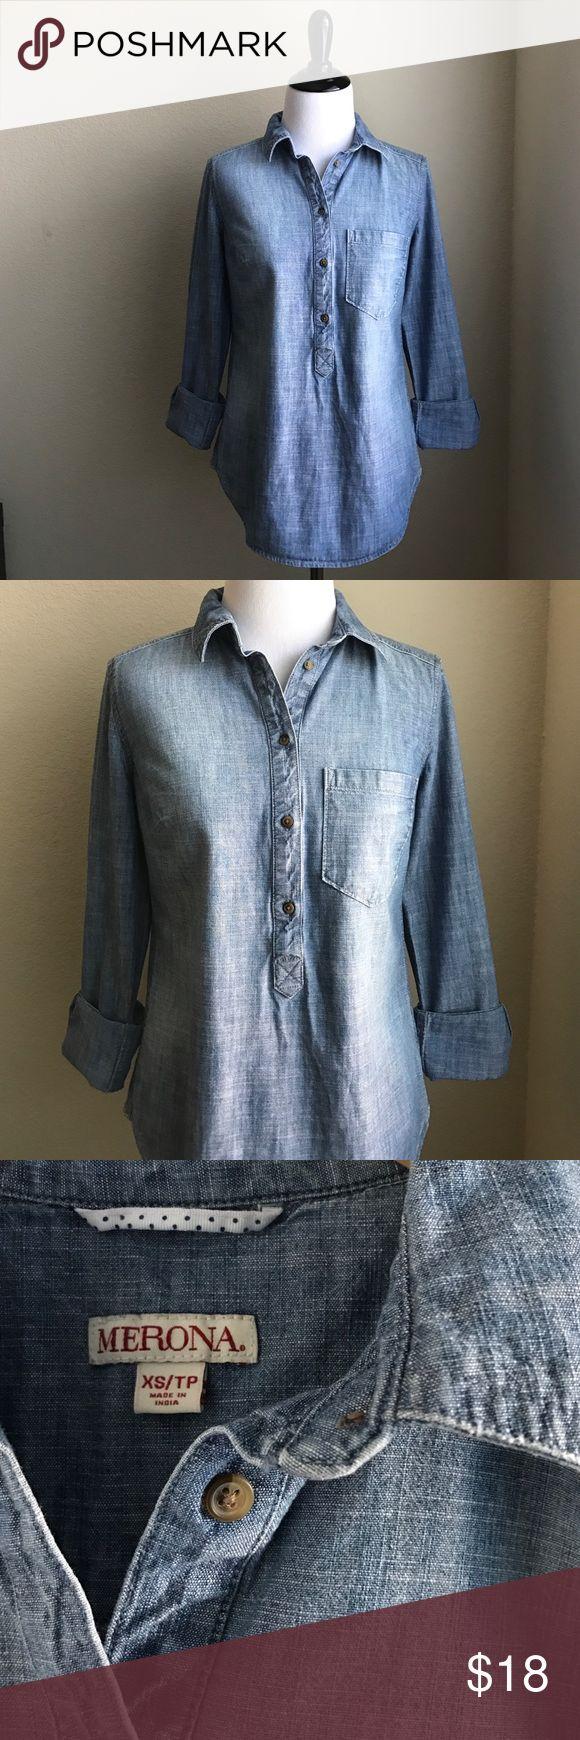 Denim Pullover Shirt A must-have closet denim top from Merona. Preloved but in excellent condition. Looks great with leggings, jeans, and even khakis! Merona Tops Button Down Shirts